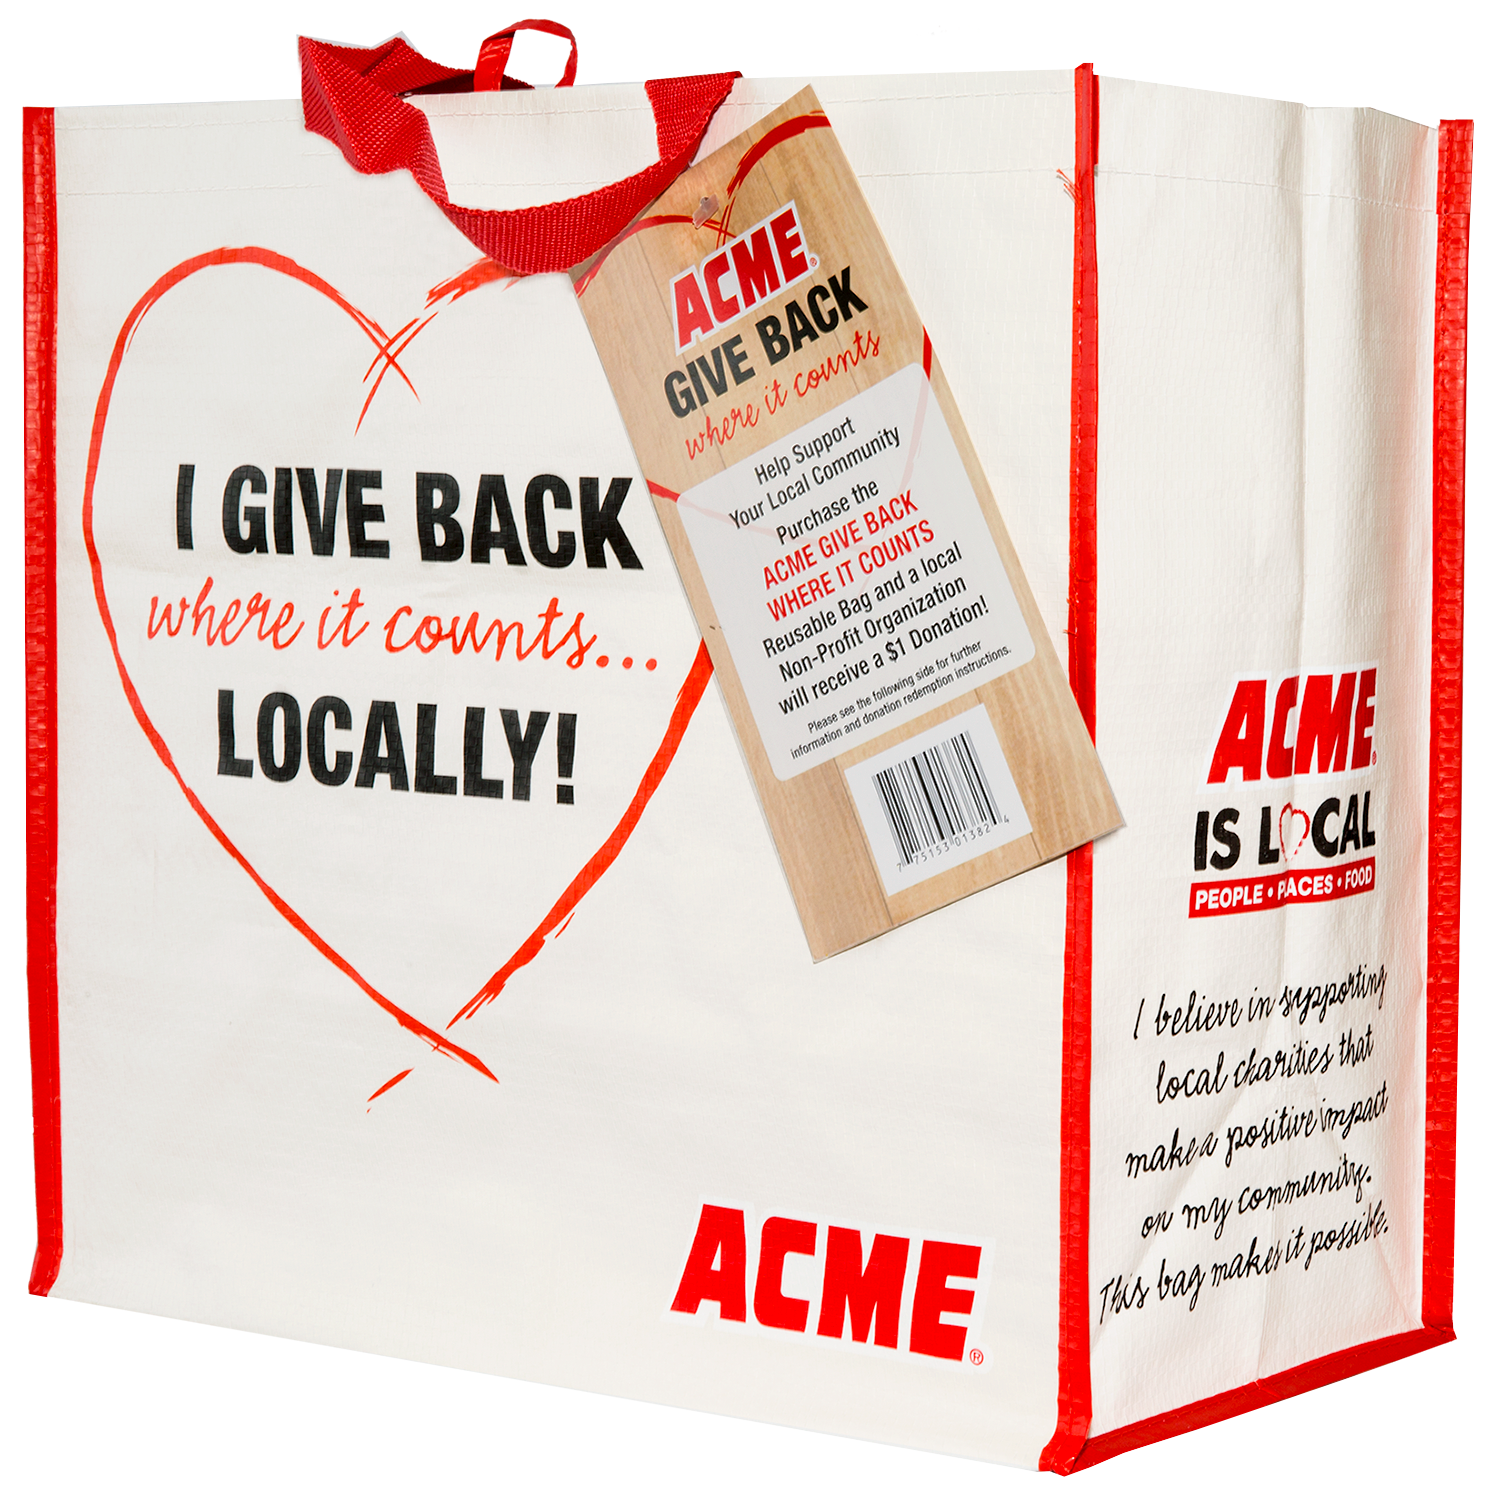 ACME Bag Image copy